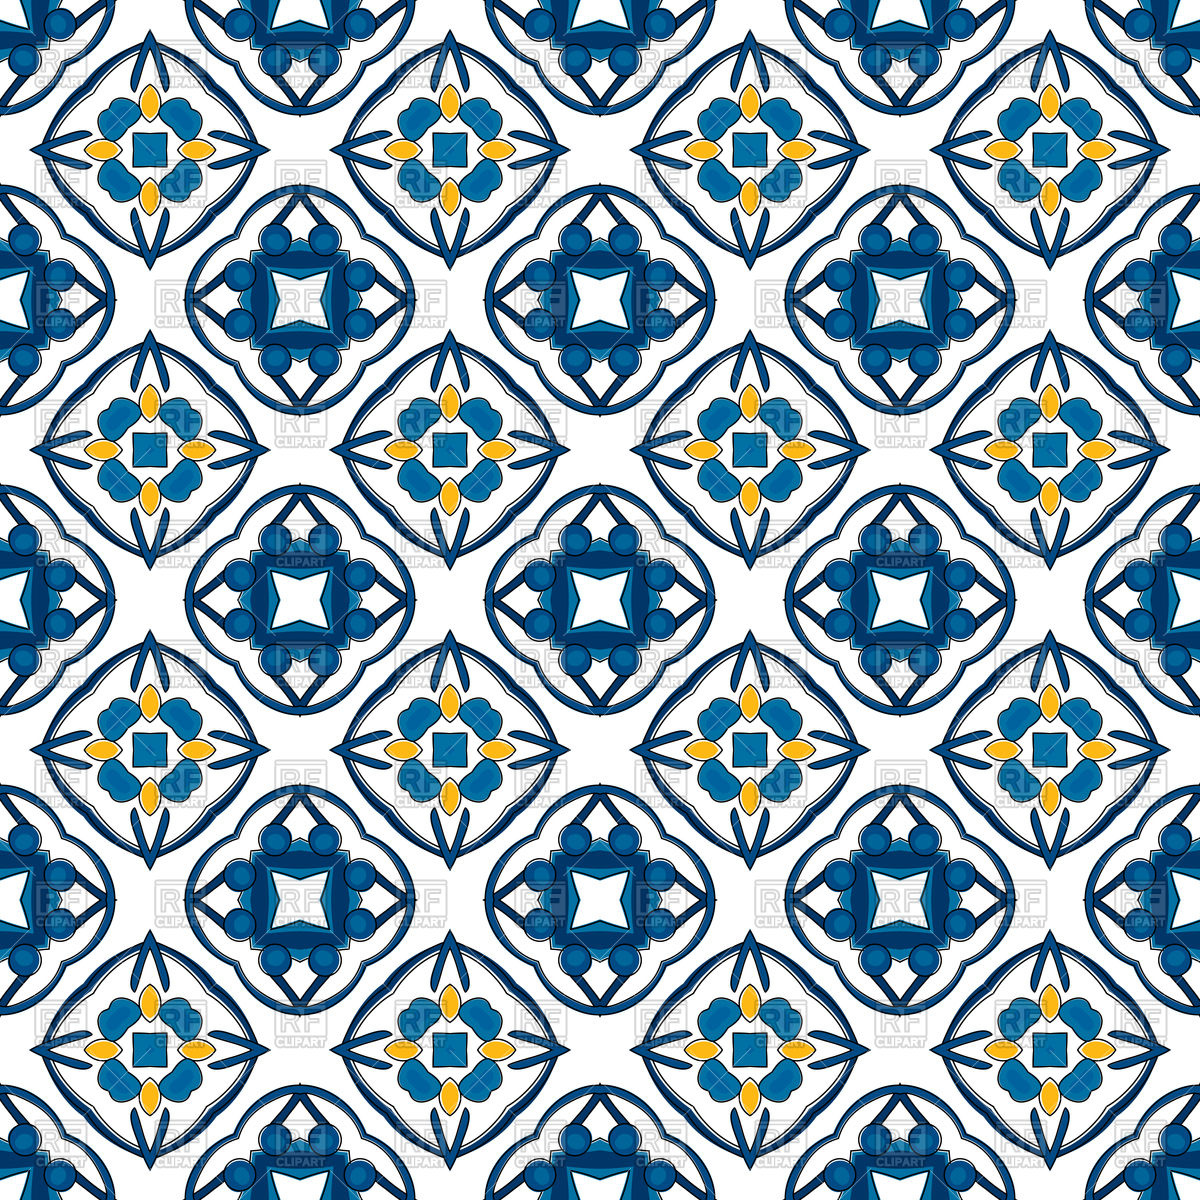 Clipartfest geometric tiles pattern. Clipart tile patterns